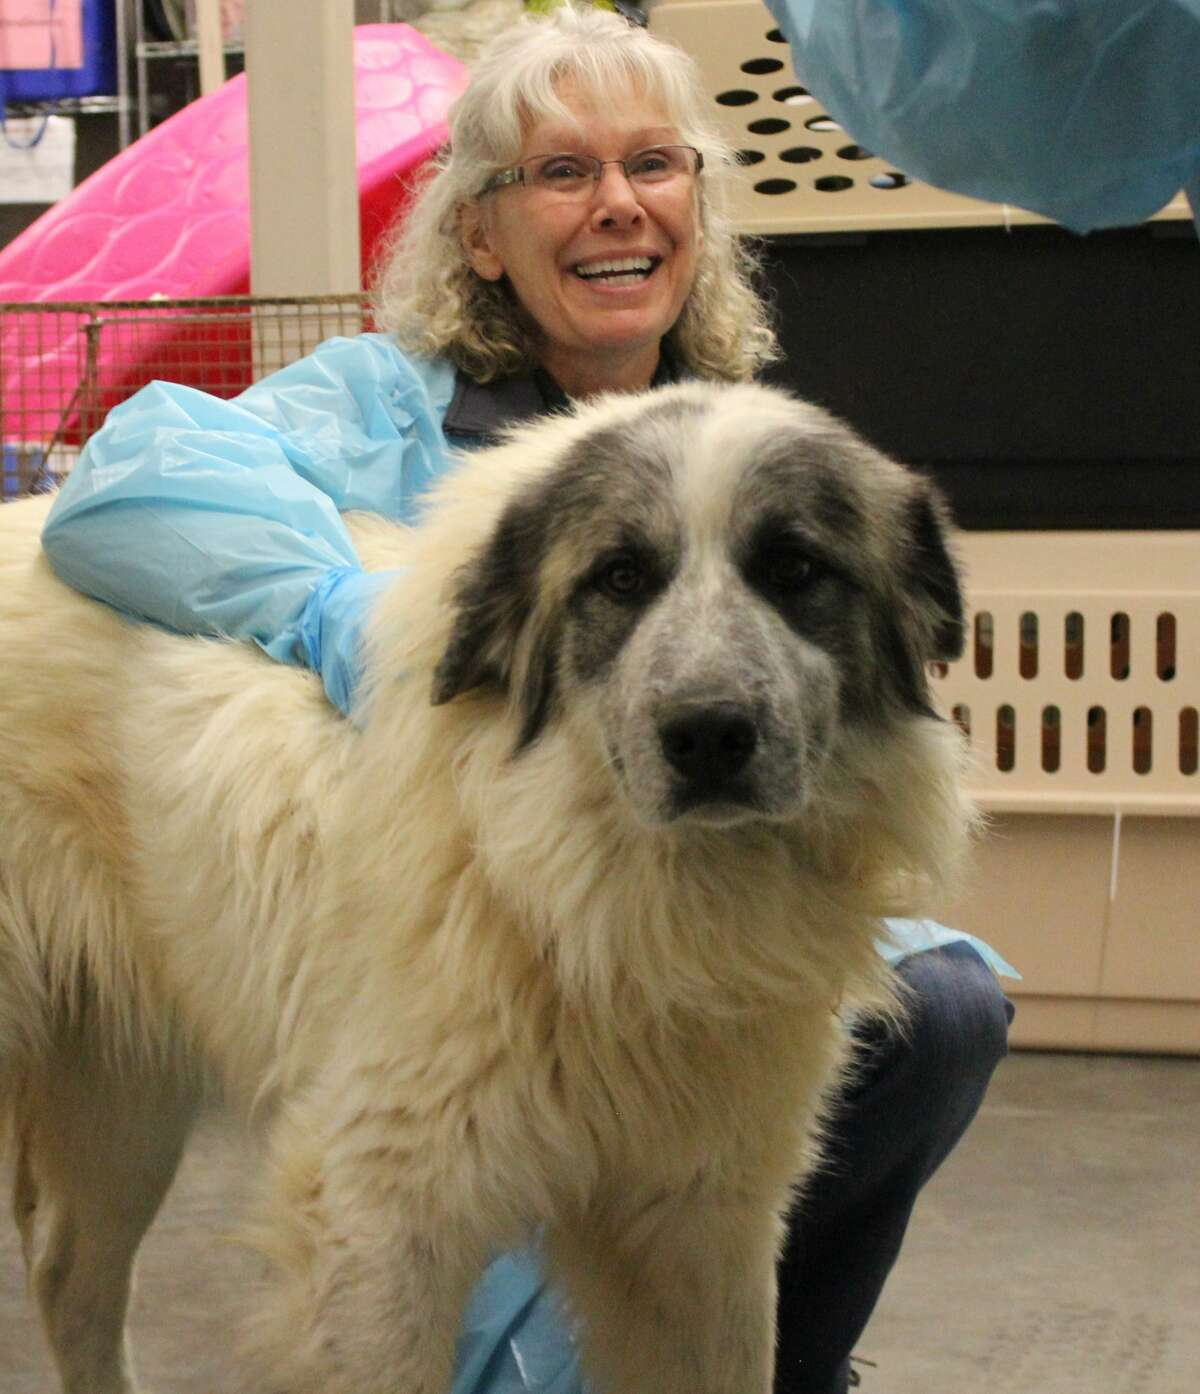 Nearly 80 dogs of various breeds and ages from a north Texas animal shelter have been sent to the Dumb Friends League, an animal shelter in Denver, Colorado. Moving the dogs from the overburdened animal shelter in Texas to Denver may give them a better chance at getting adopted.